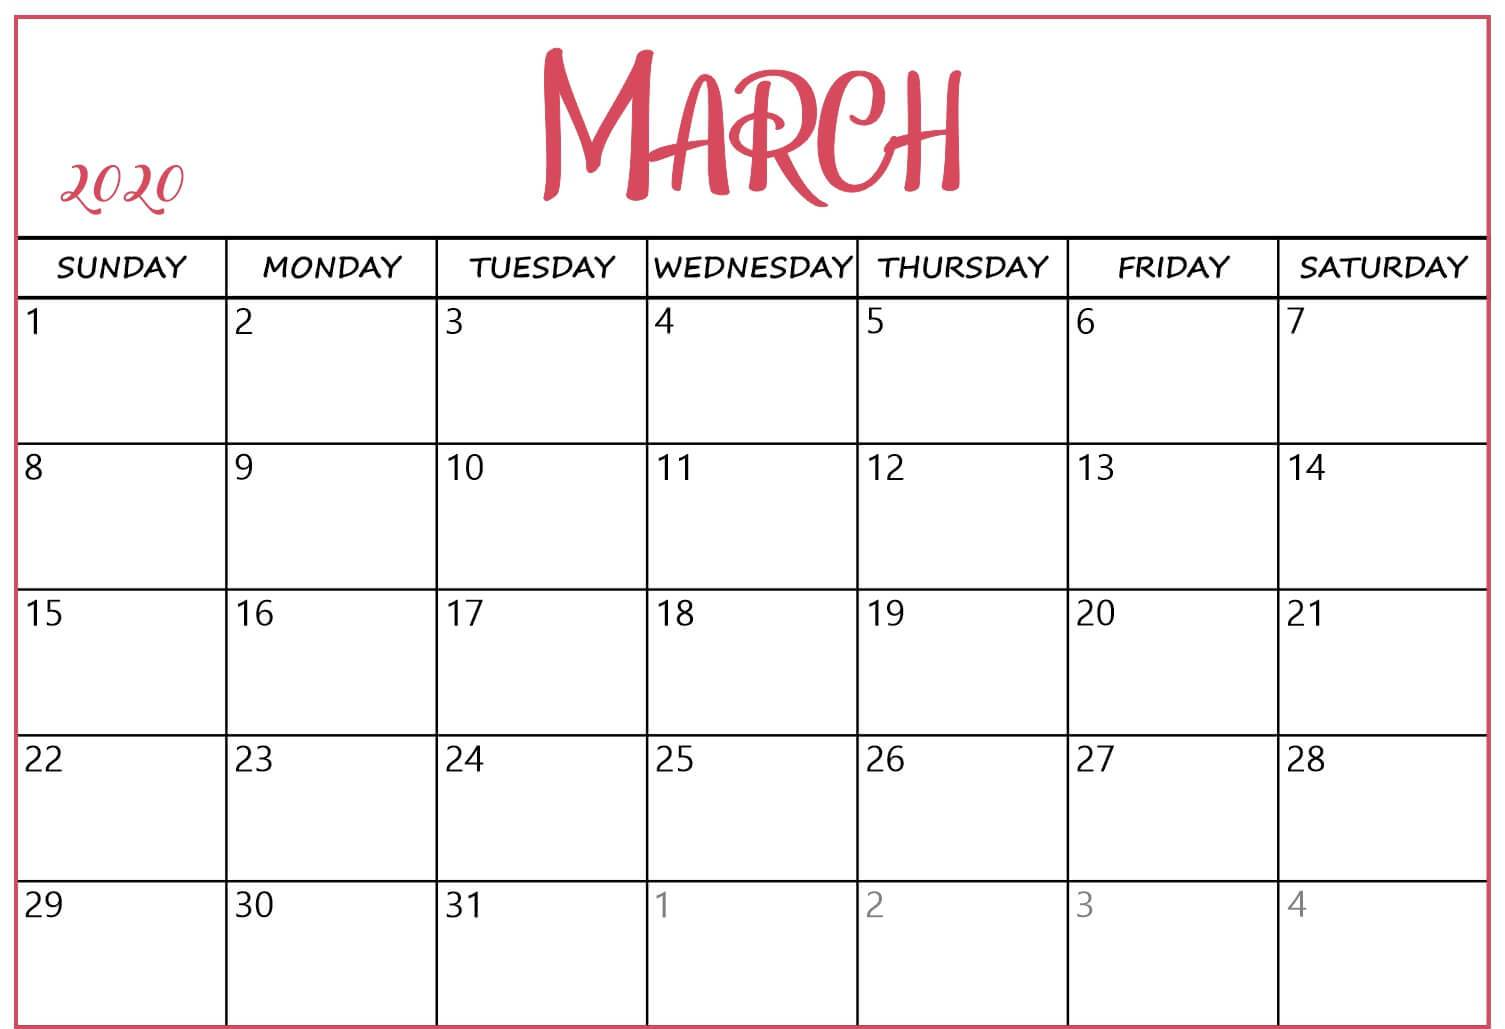 March 2020 Calendar Template Word